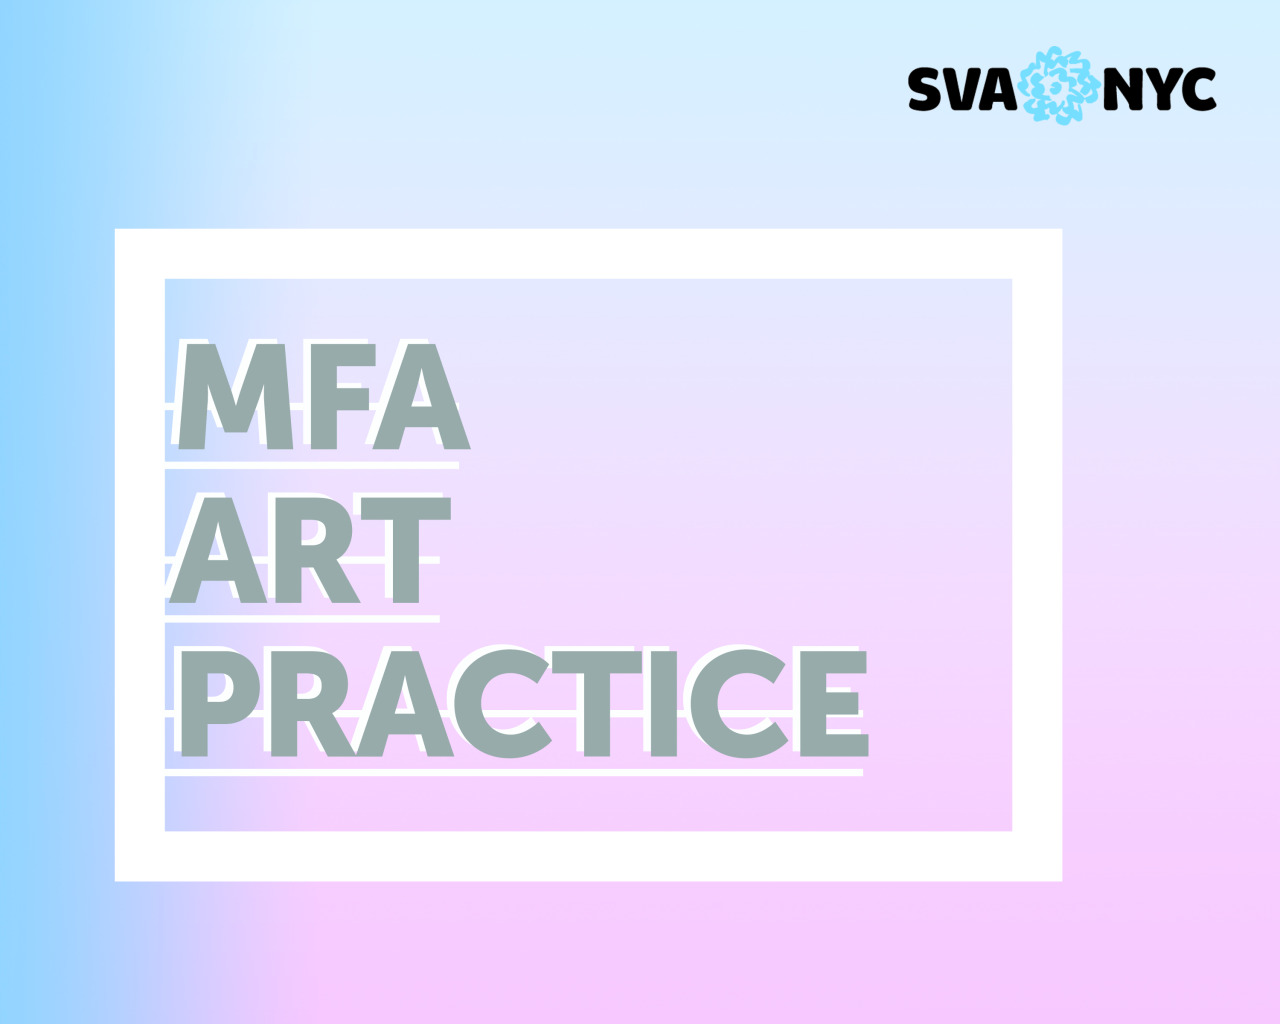 MFA Art Practice will be hosting an online information session tonight, November 17th, at 6:30pm EST! Follow the   link   to the session to hear all about our program, goals, and facilities from our Chair  David Ross , Director of Operations and Faculty Member  Jacquelyn Strycker , Faculty Member  Robin Winters , and current participant  Sarah Grass . See you there!